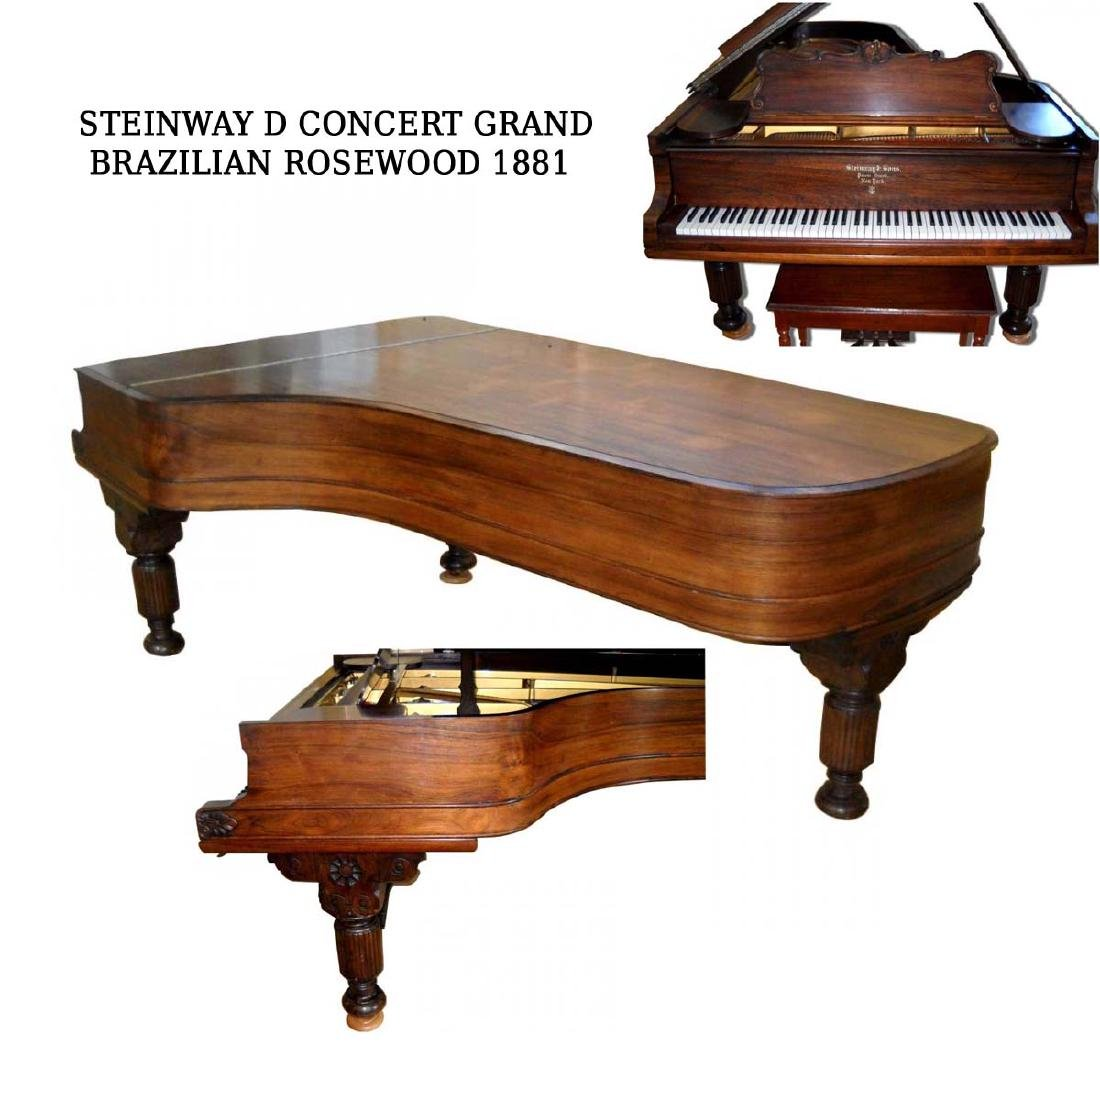 A stunning 1881 Steinway Model 'D' Concert Grand Piano